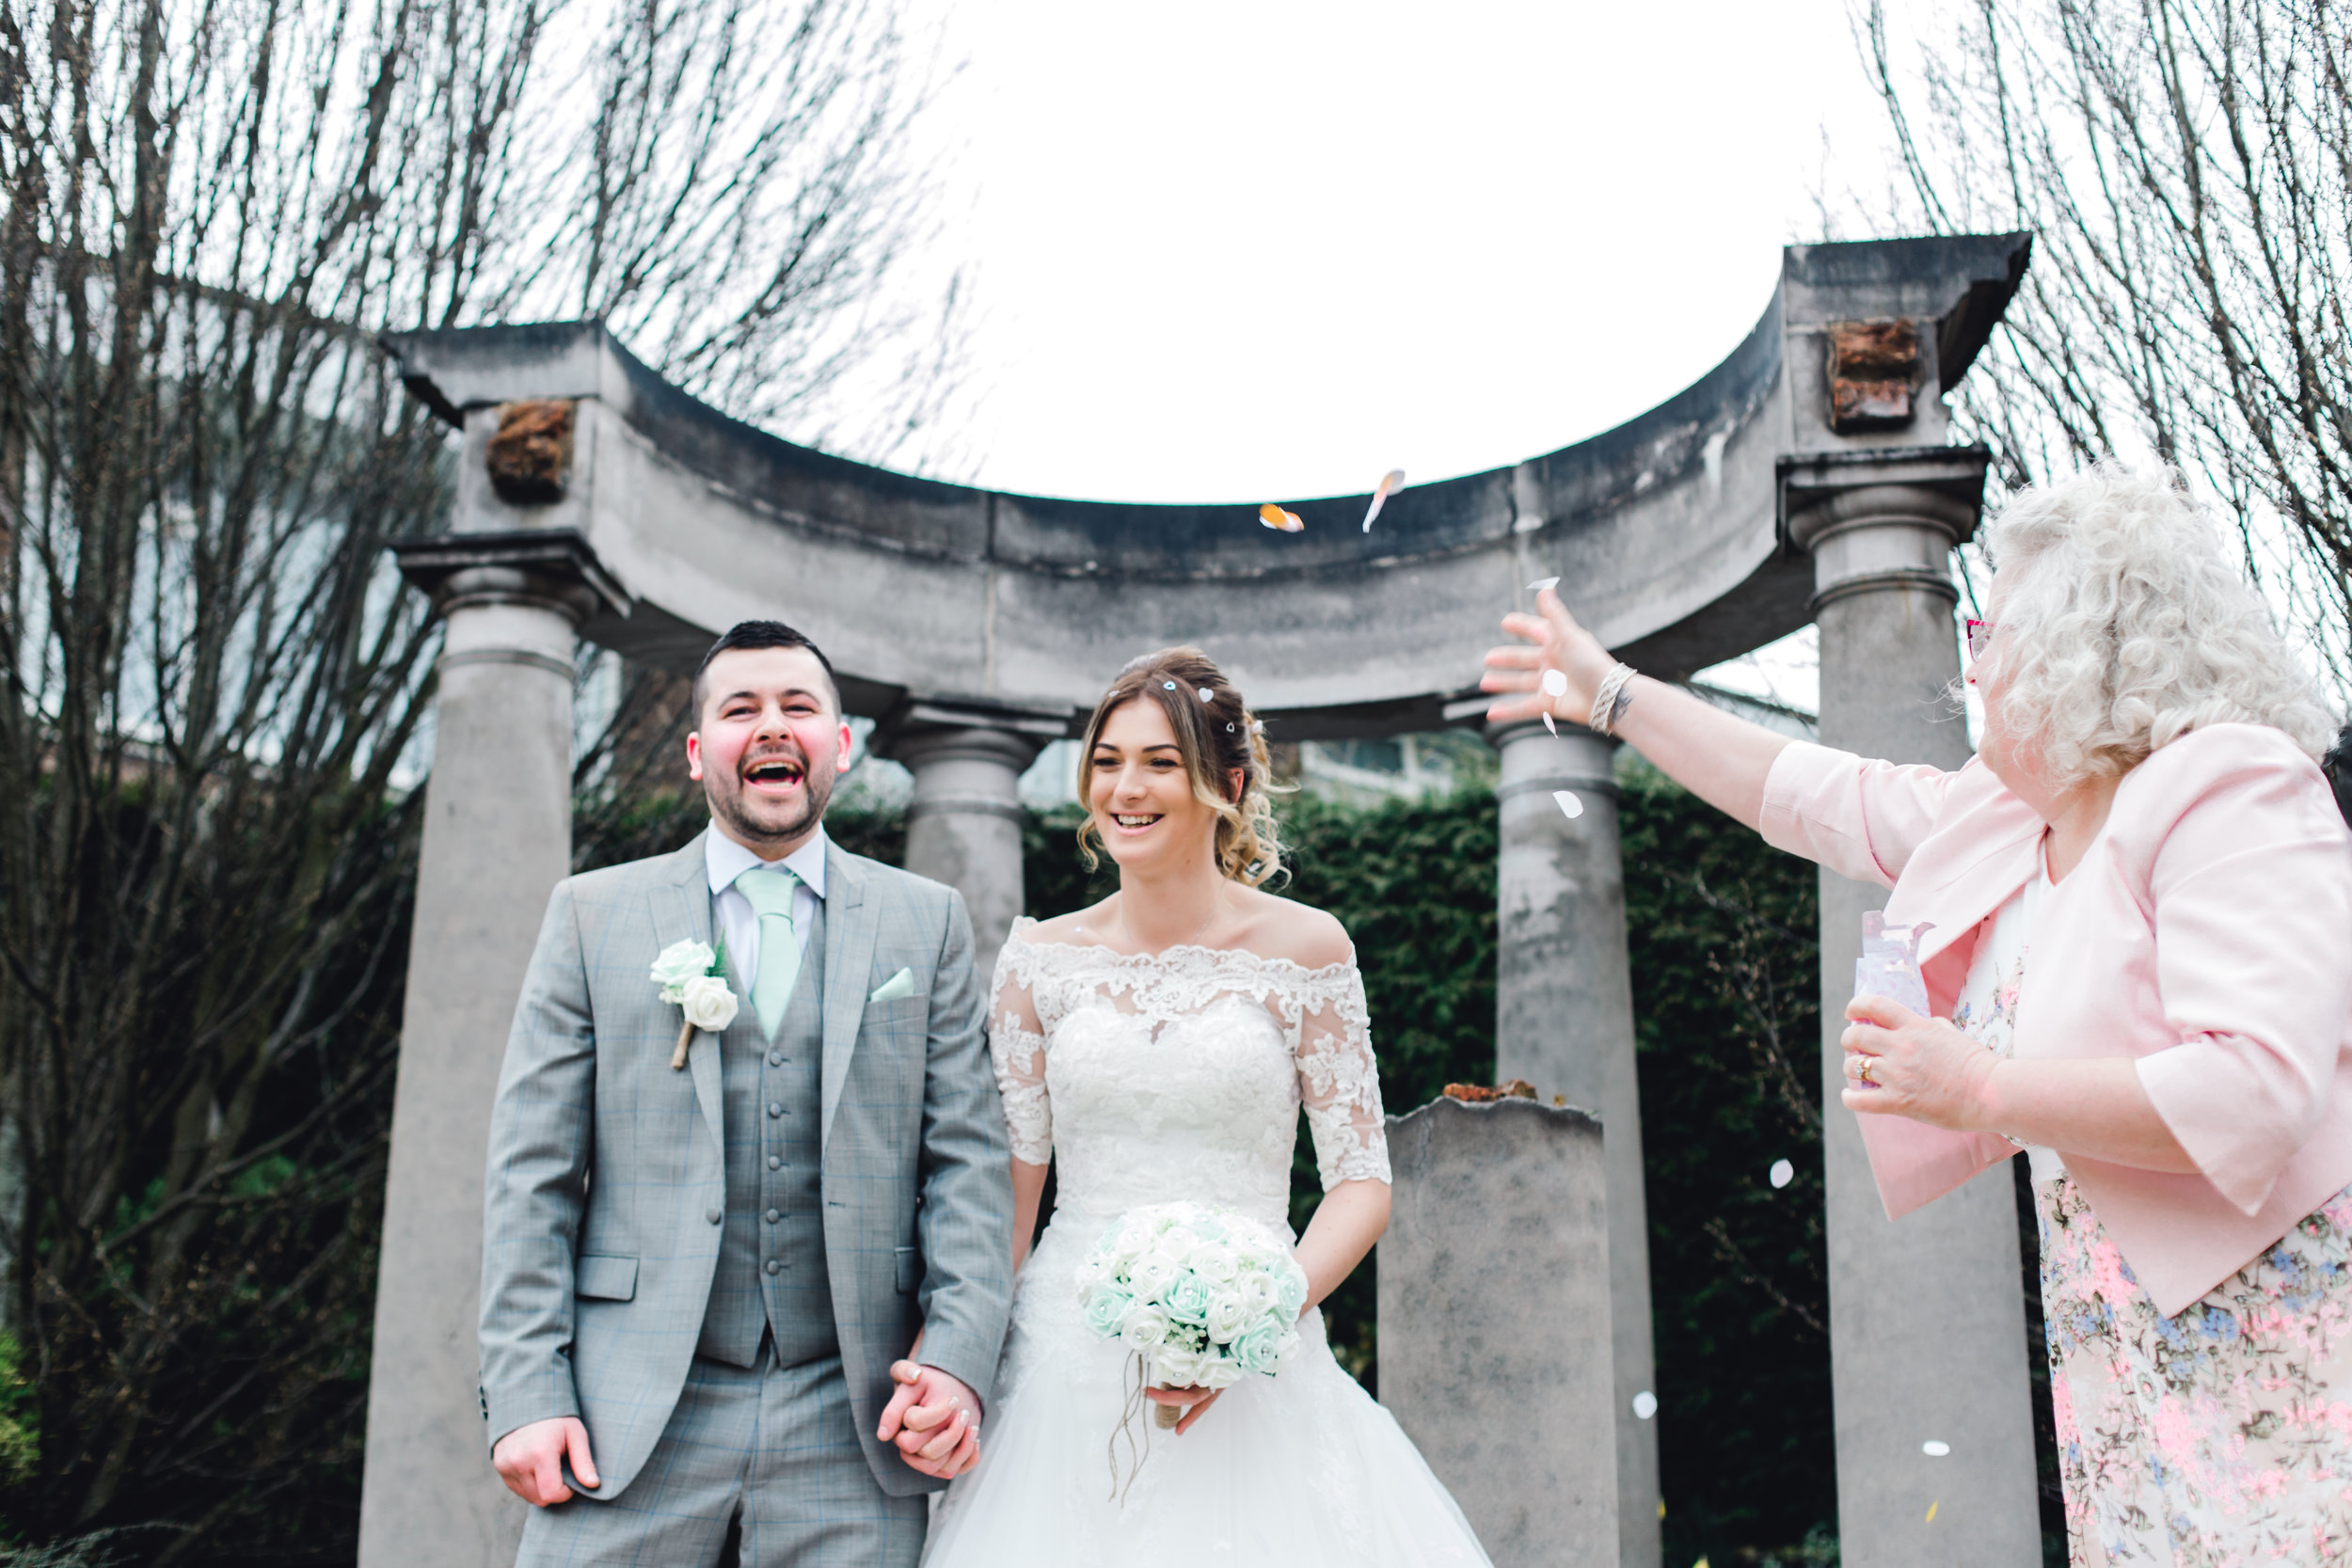 Funny confetti toss over the bride and groom